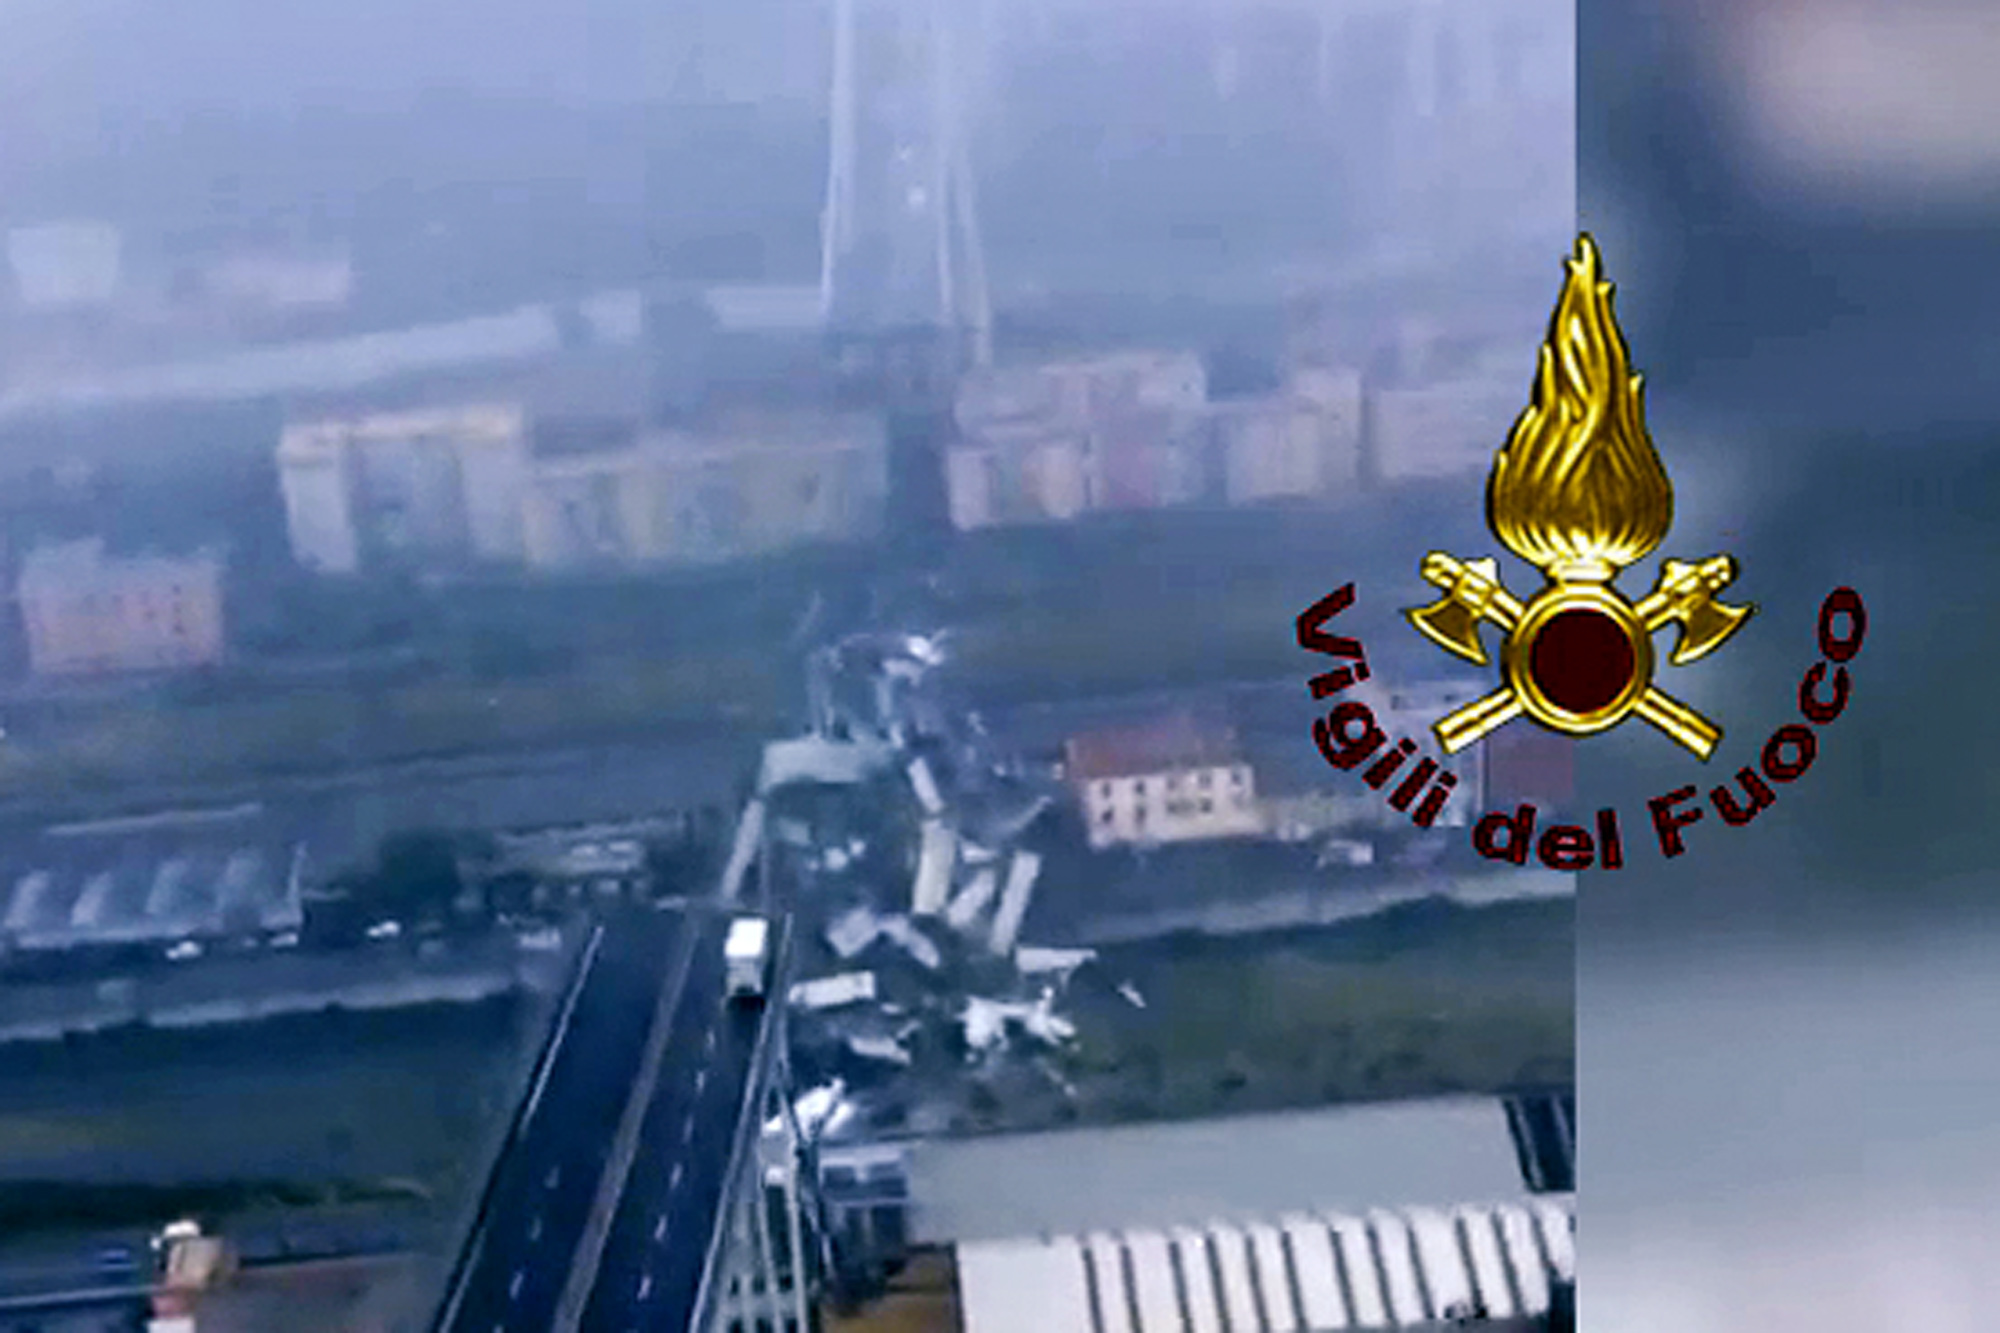 <div class='meta'><div class='origin-logo' data-origin='none'></div><span class='caption-text' data-credit='Vigili Del Fuoco via AP'>This frame taken from a video released by the Italian firefighters, shows an aerial view of the collapsed Morandi highway bridge in Genoa, northern Italy, Tuesday, Aug. 14, 2018.</span></div>